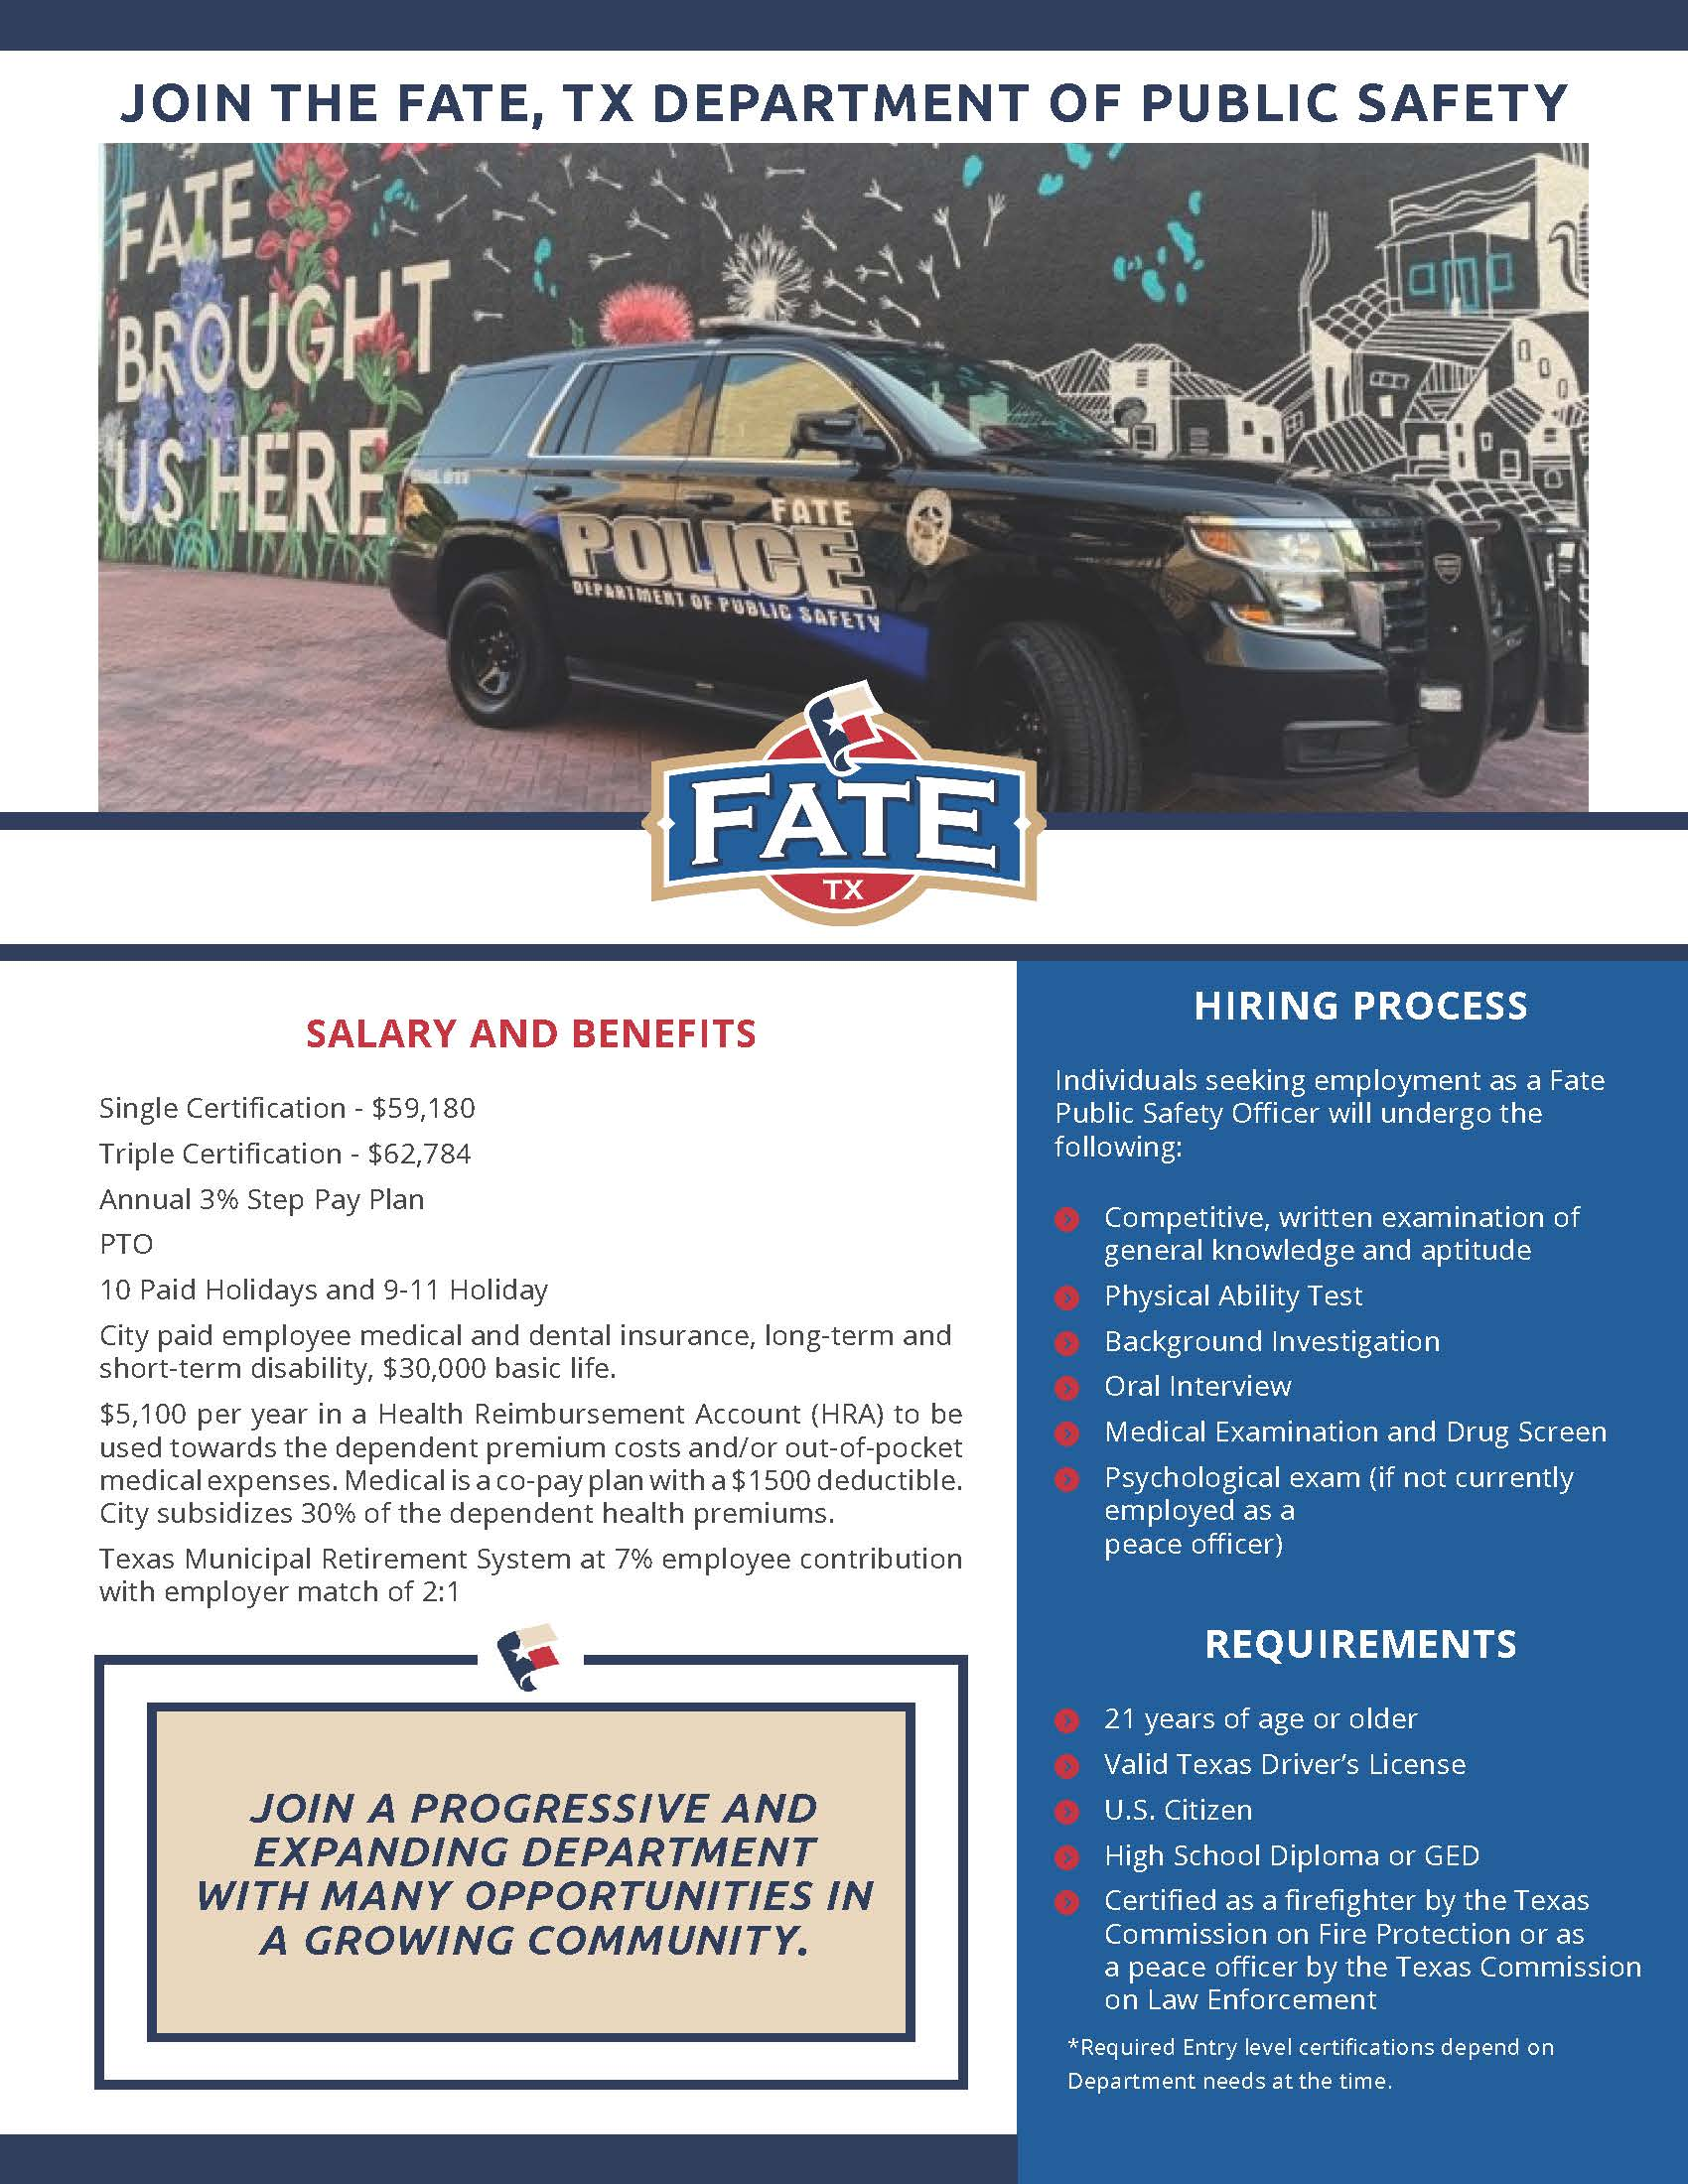 Fate Texas DPS Recruitment Flyer 9.3.20_Page_1